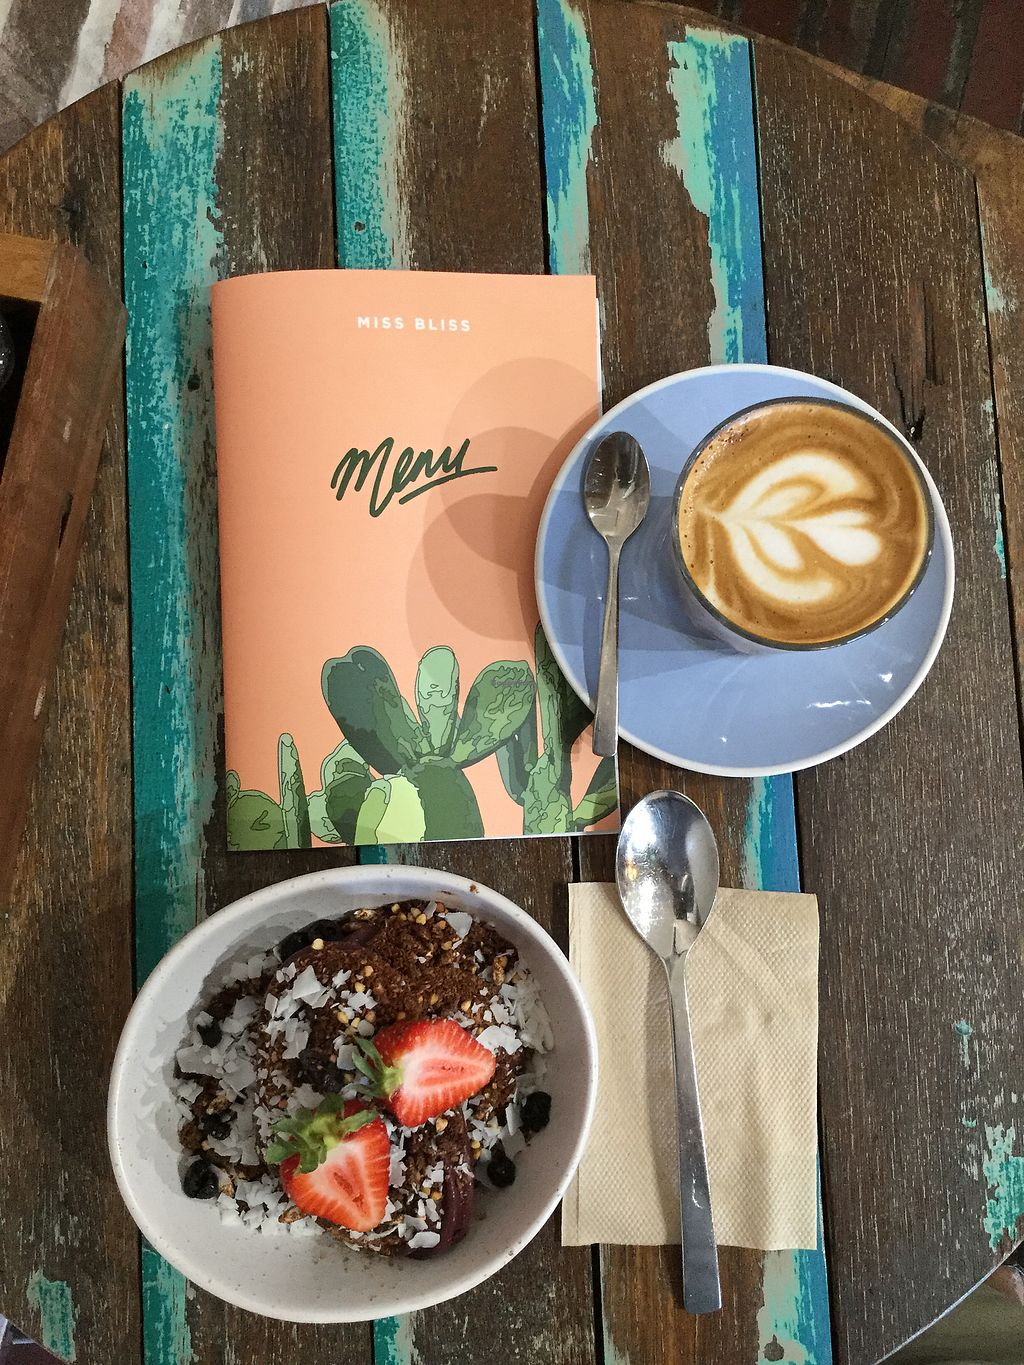 """Photo of Miss Bliss Wholefoods Kitchen  by <a href=""""/members/profile/Mike%20Munsie"""">Mike Munsie</a> <br/>berry bliss + almond latte <br/> March 17, 2018  - <a href='/contact/abuse/image/65037/371642'>Report</a>"""